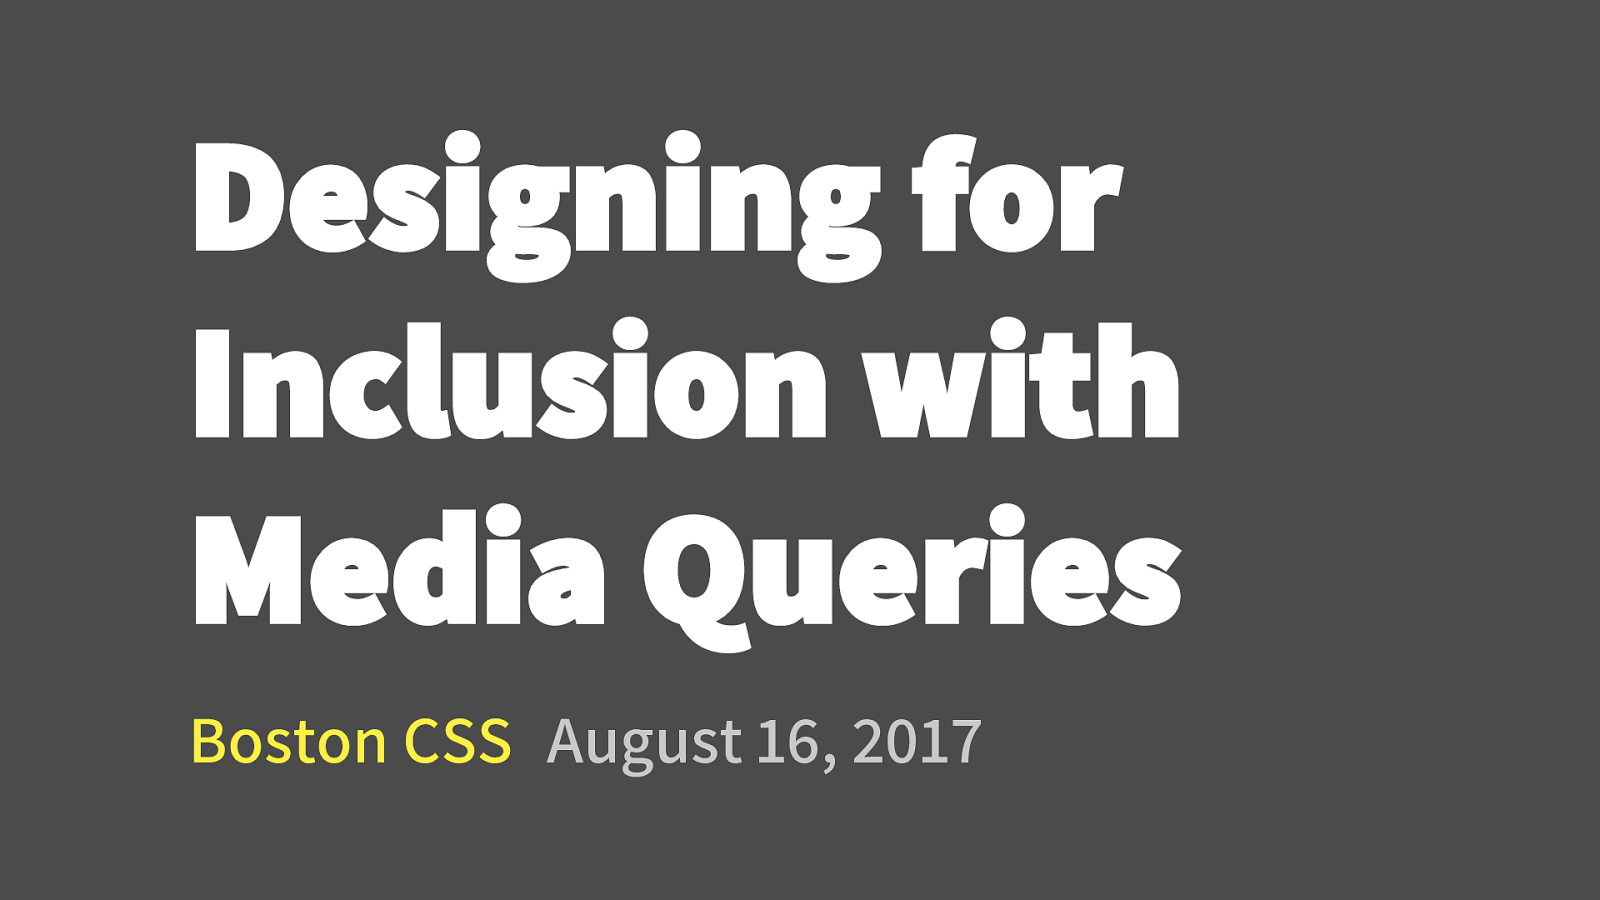 Designing for Inclusion with Media Queries